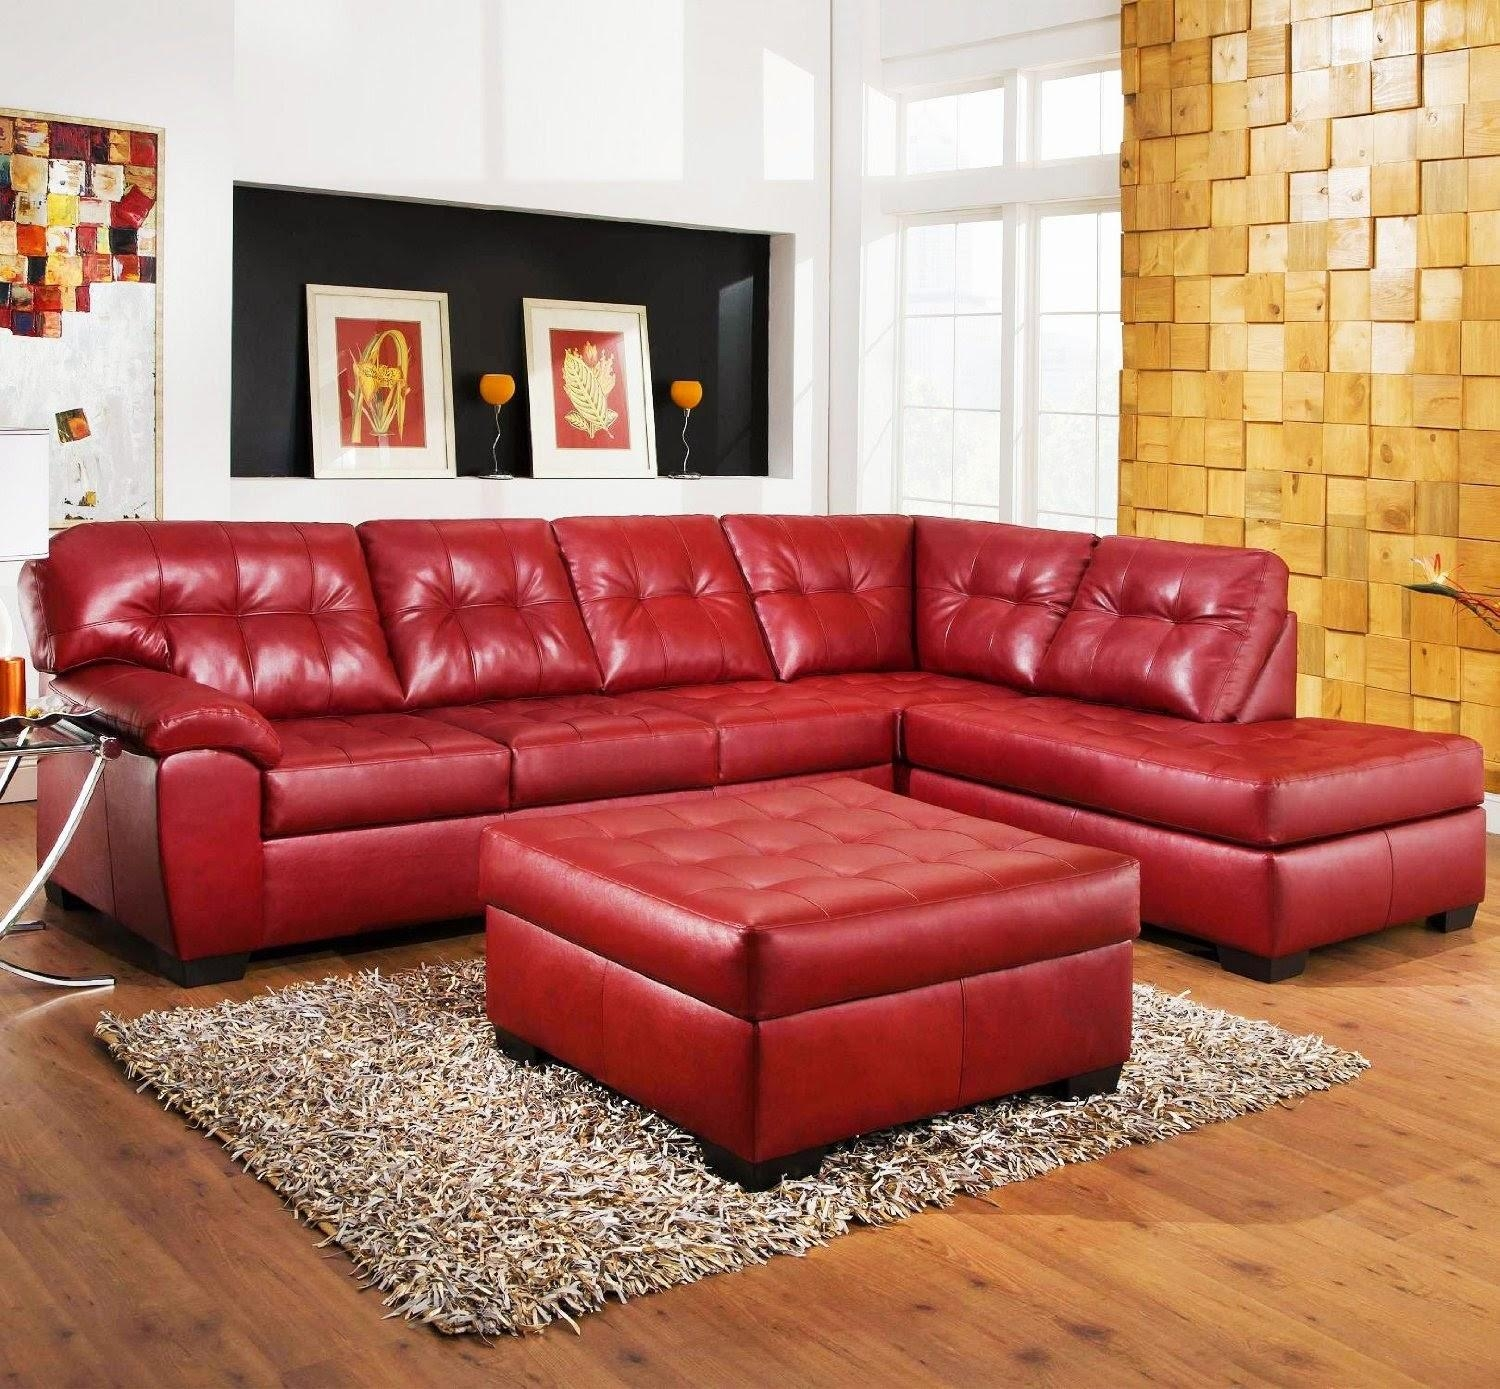 Red Sectional Sleeper Sofa – Tourdecarroll Throughout Red Sectional Sleeper Sofas (Image 8 of 22)